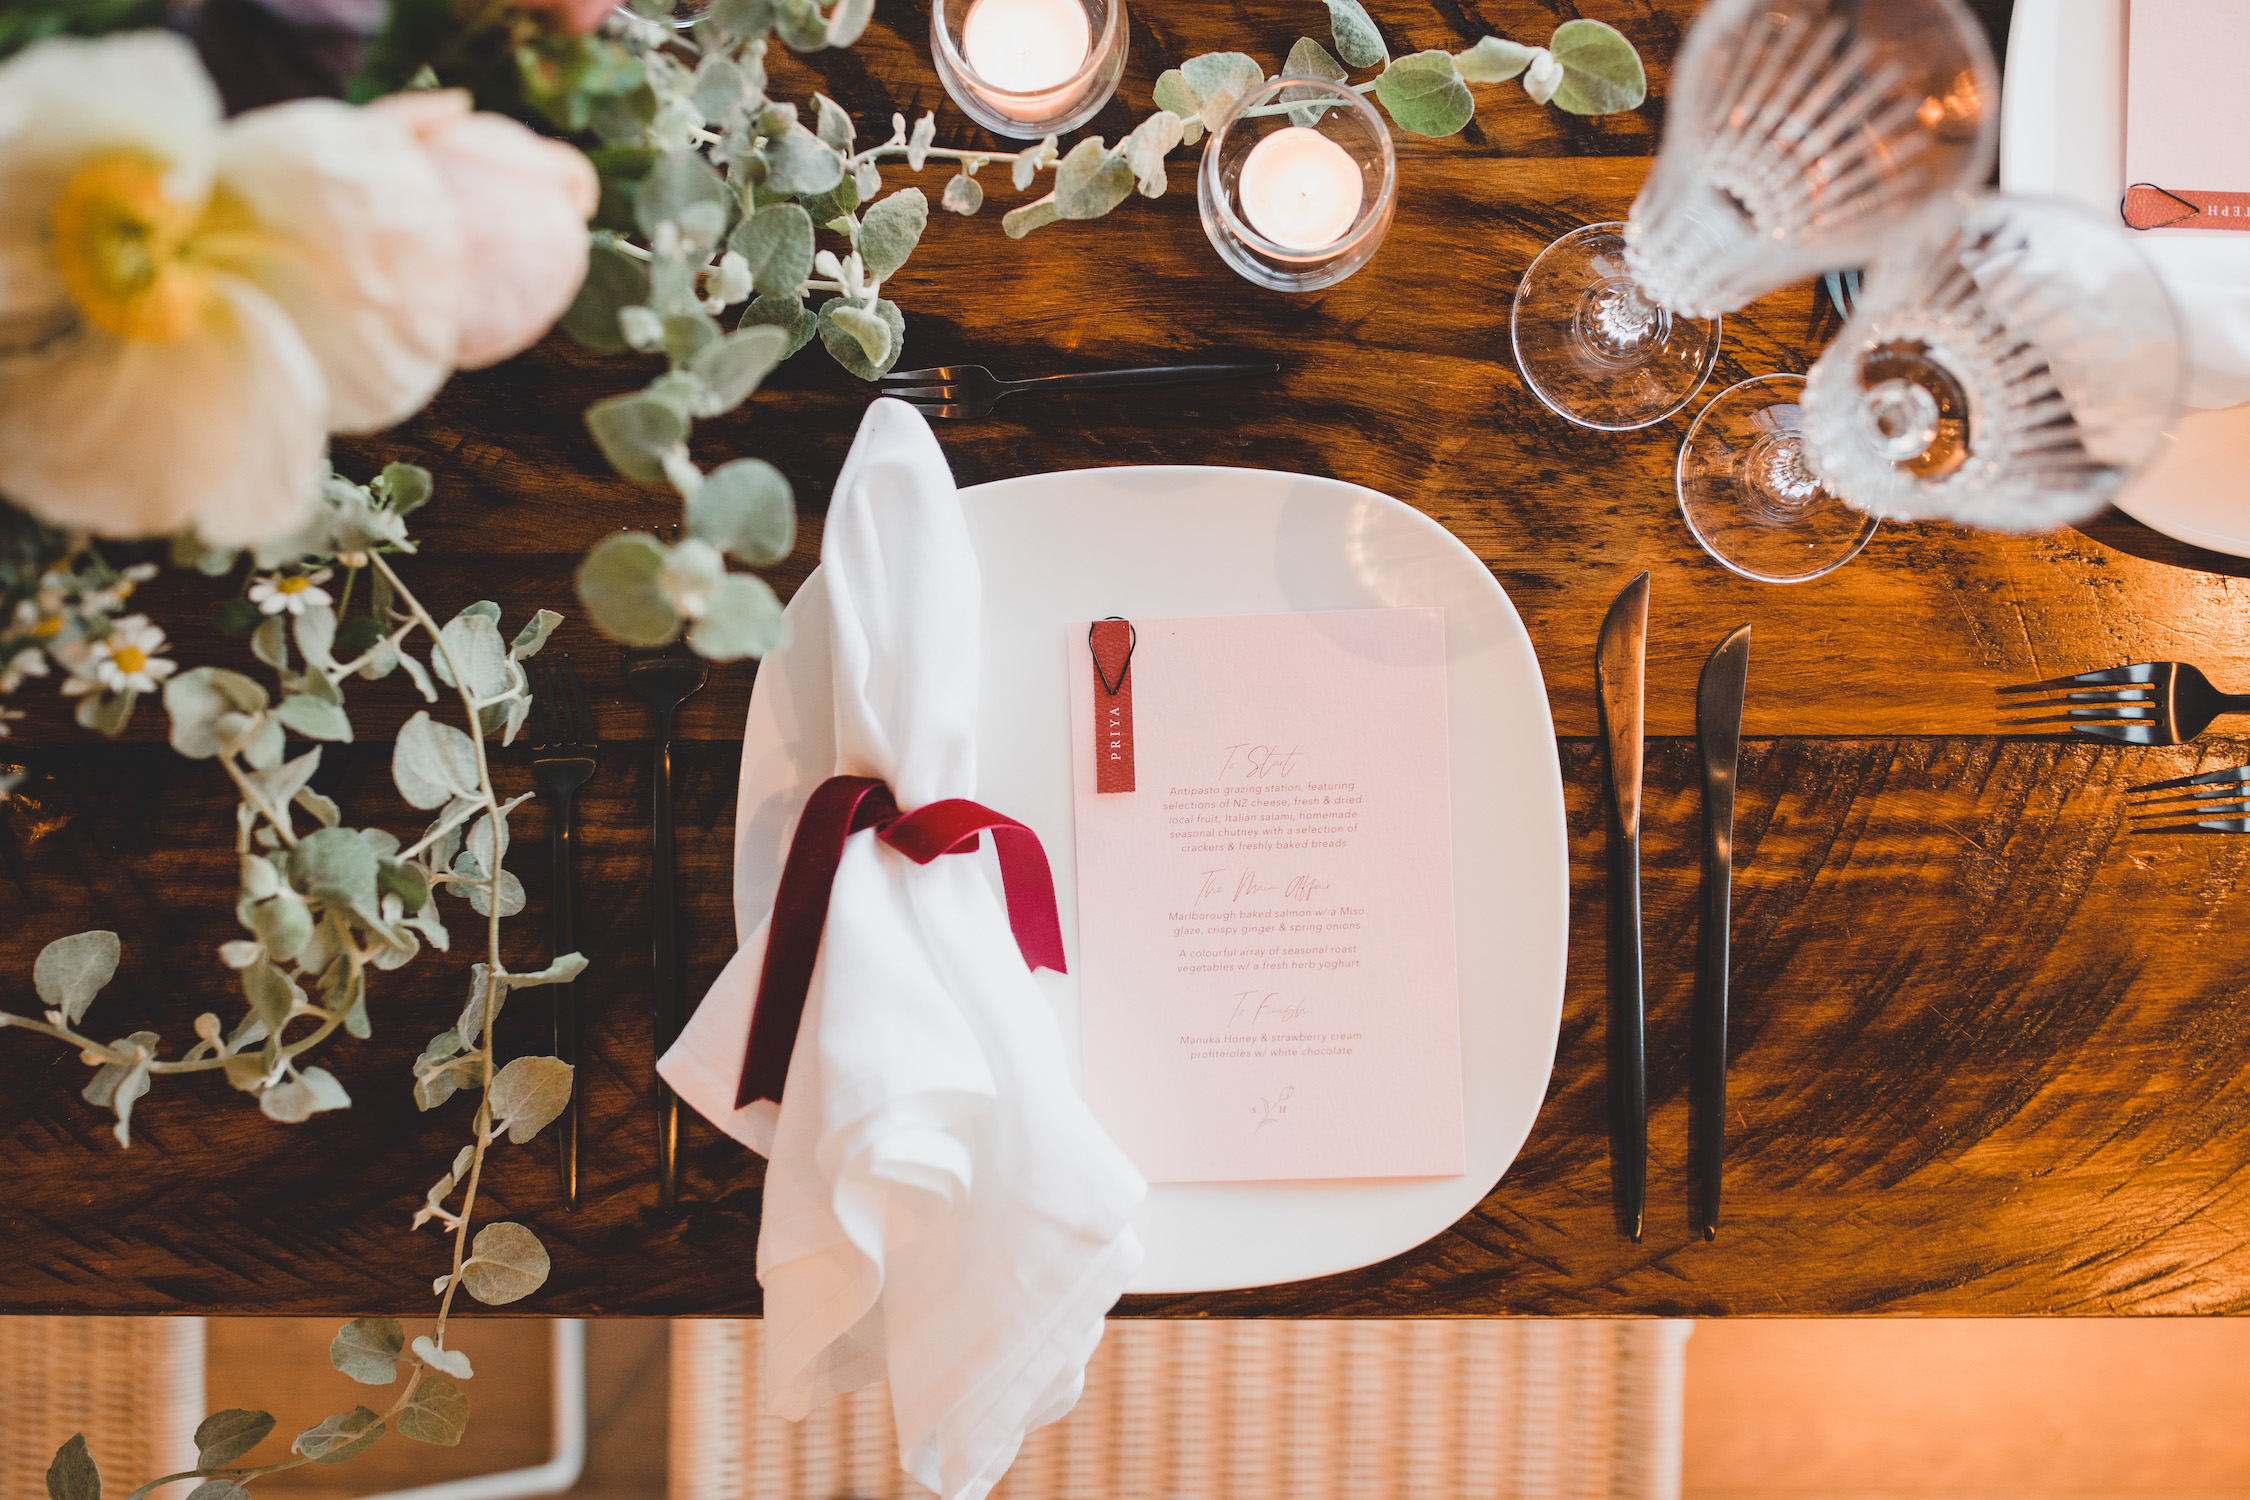 Queenstown Wedding Planner - Holly & Co Table setting